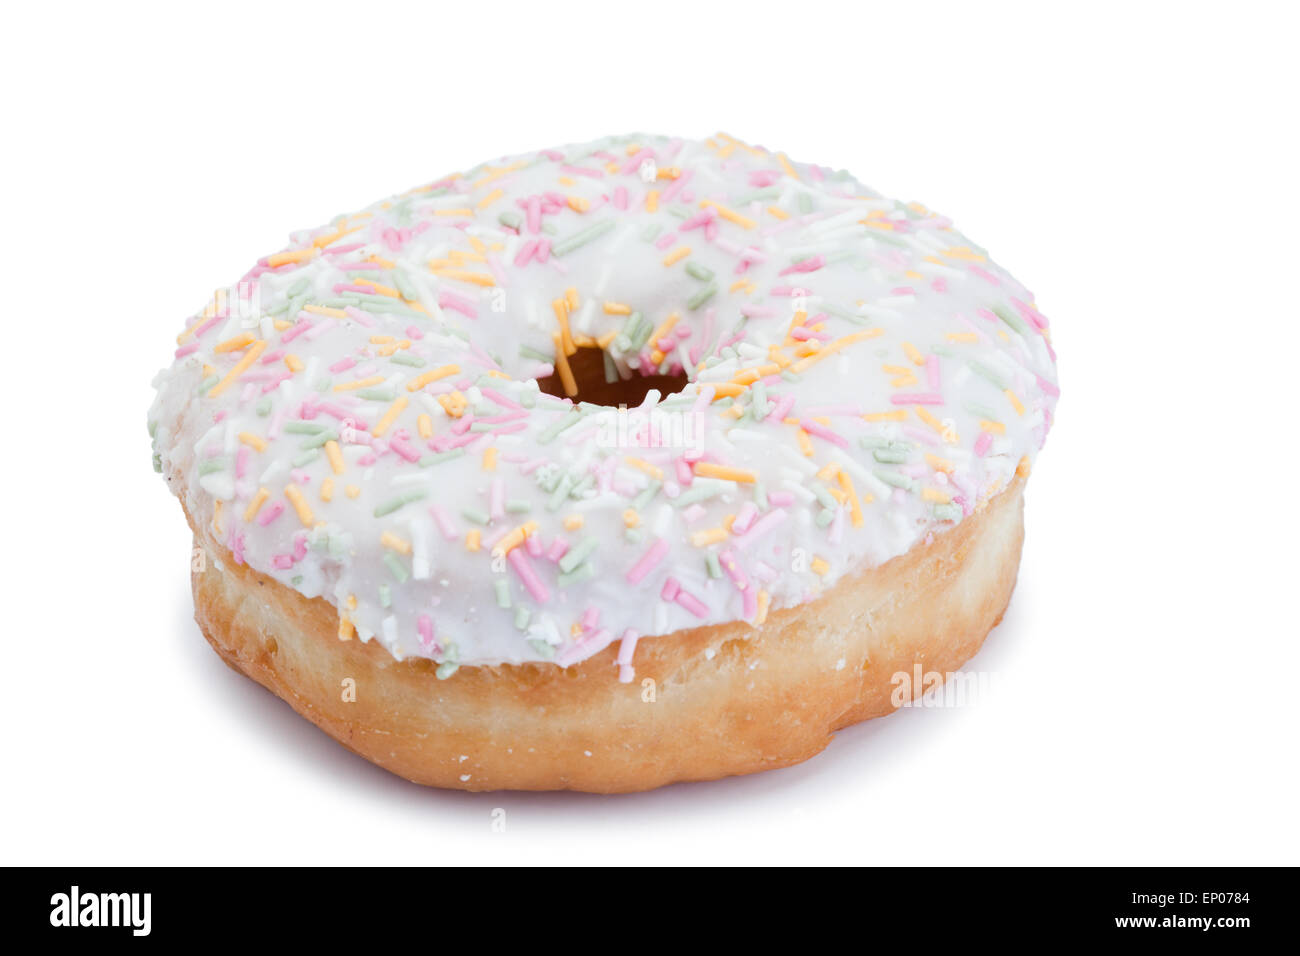 Pink Iced Doughnut covered in sprinkles isolated - Stock Image